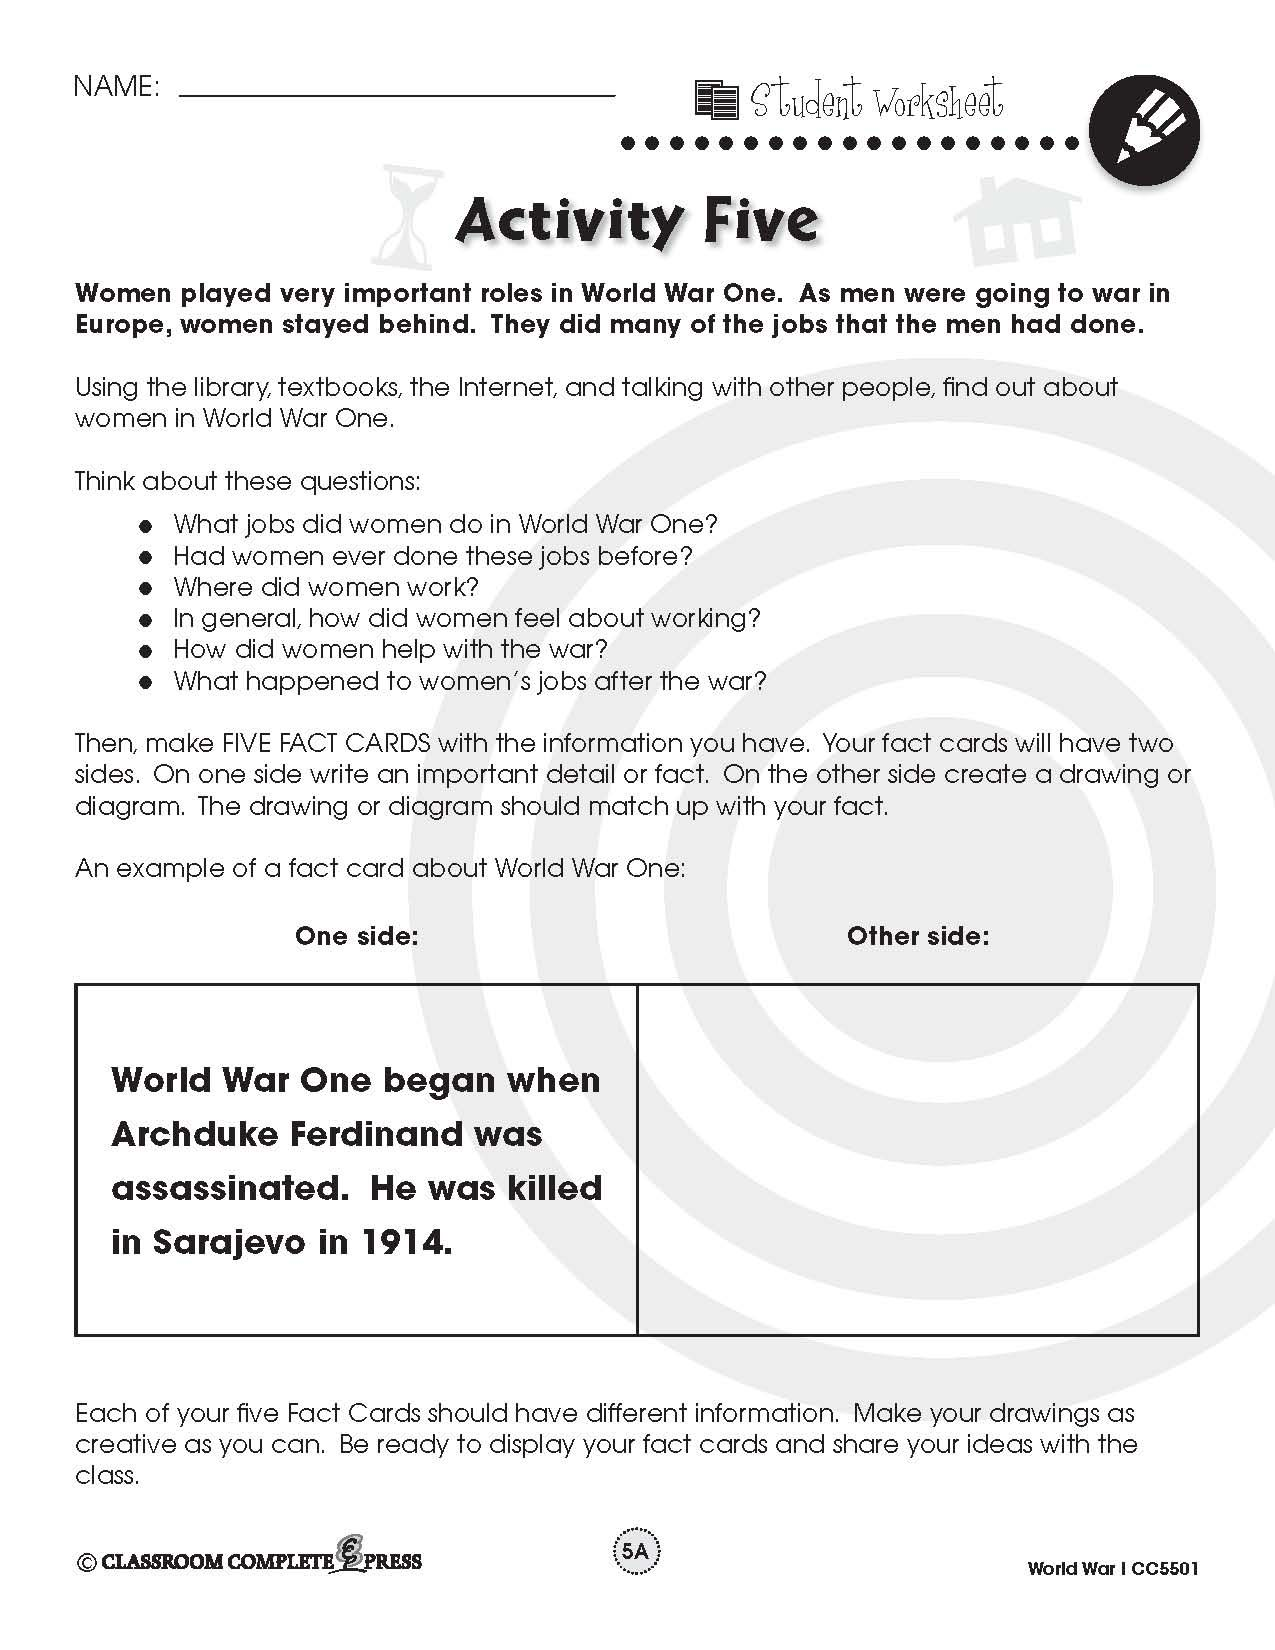 Create Fact Cards For The Women Who Played An Important Role In World War I With This Free Activity From Ccp Interactive Social Studies Lesson Military History